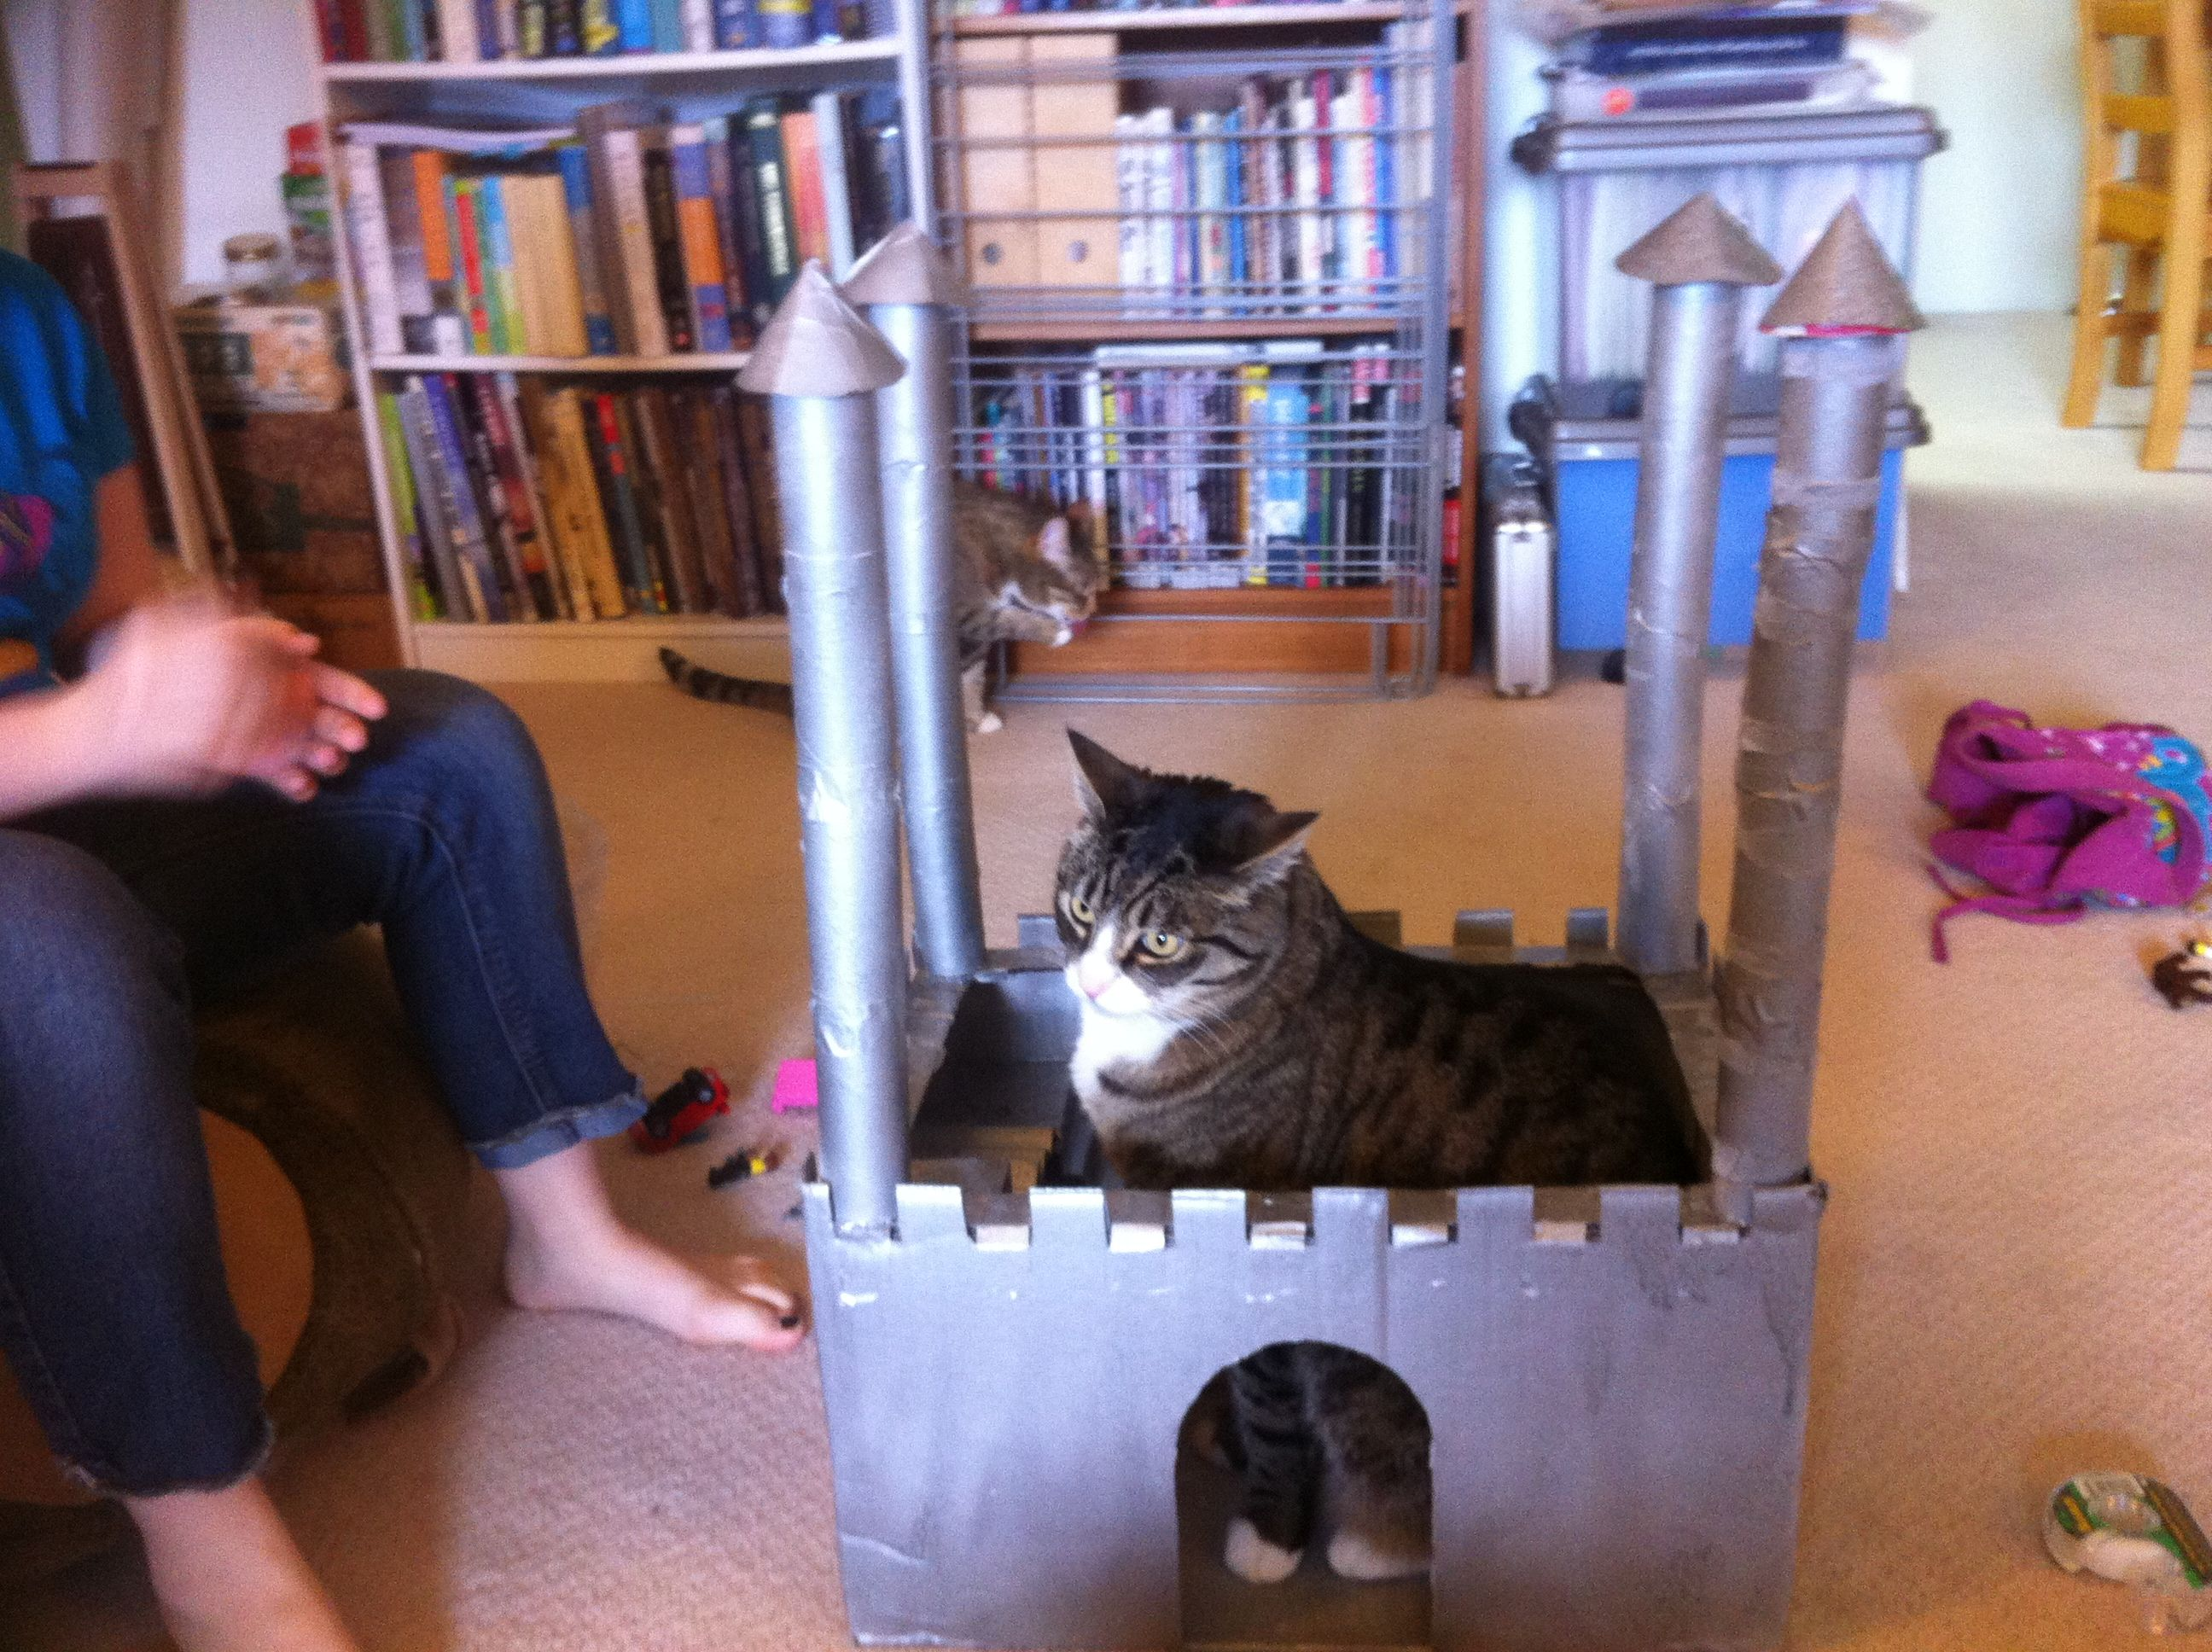 Cardboard Castle (can't imprison cats though)!